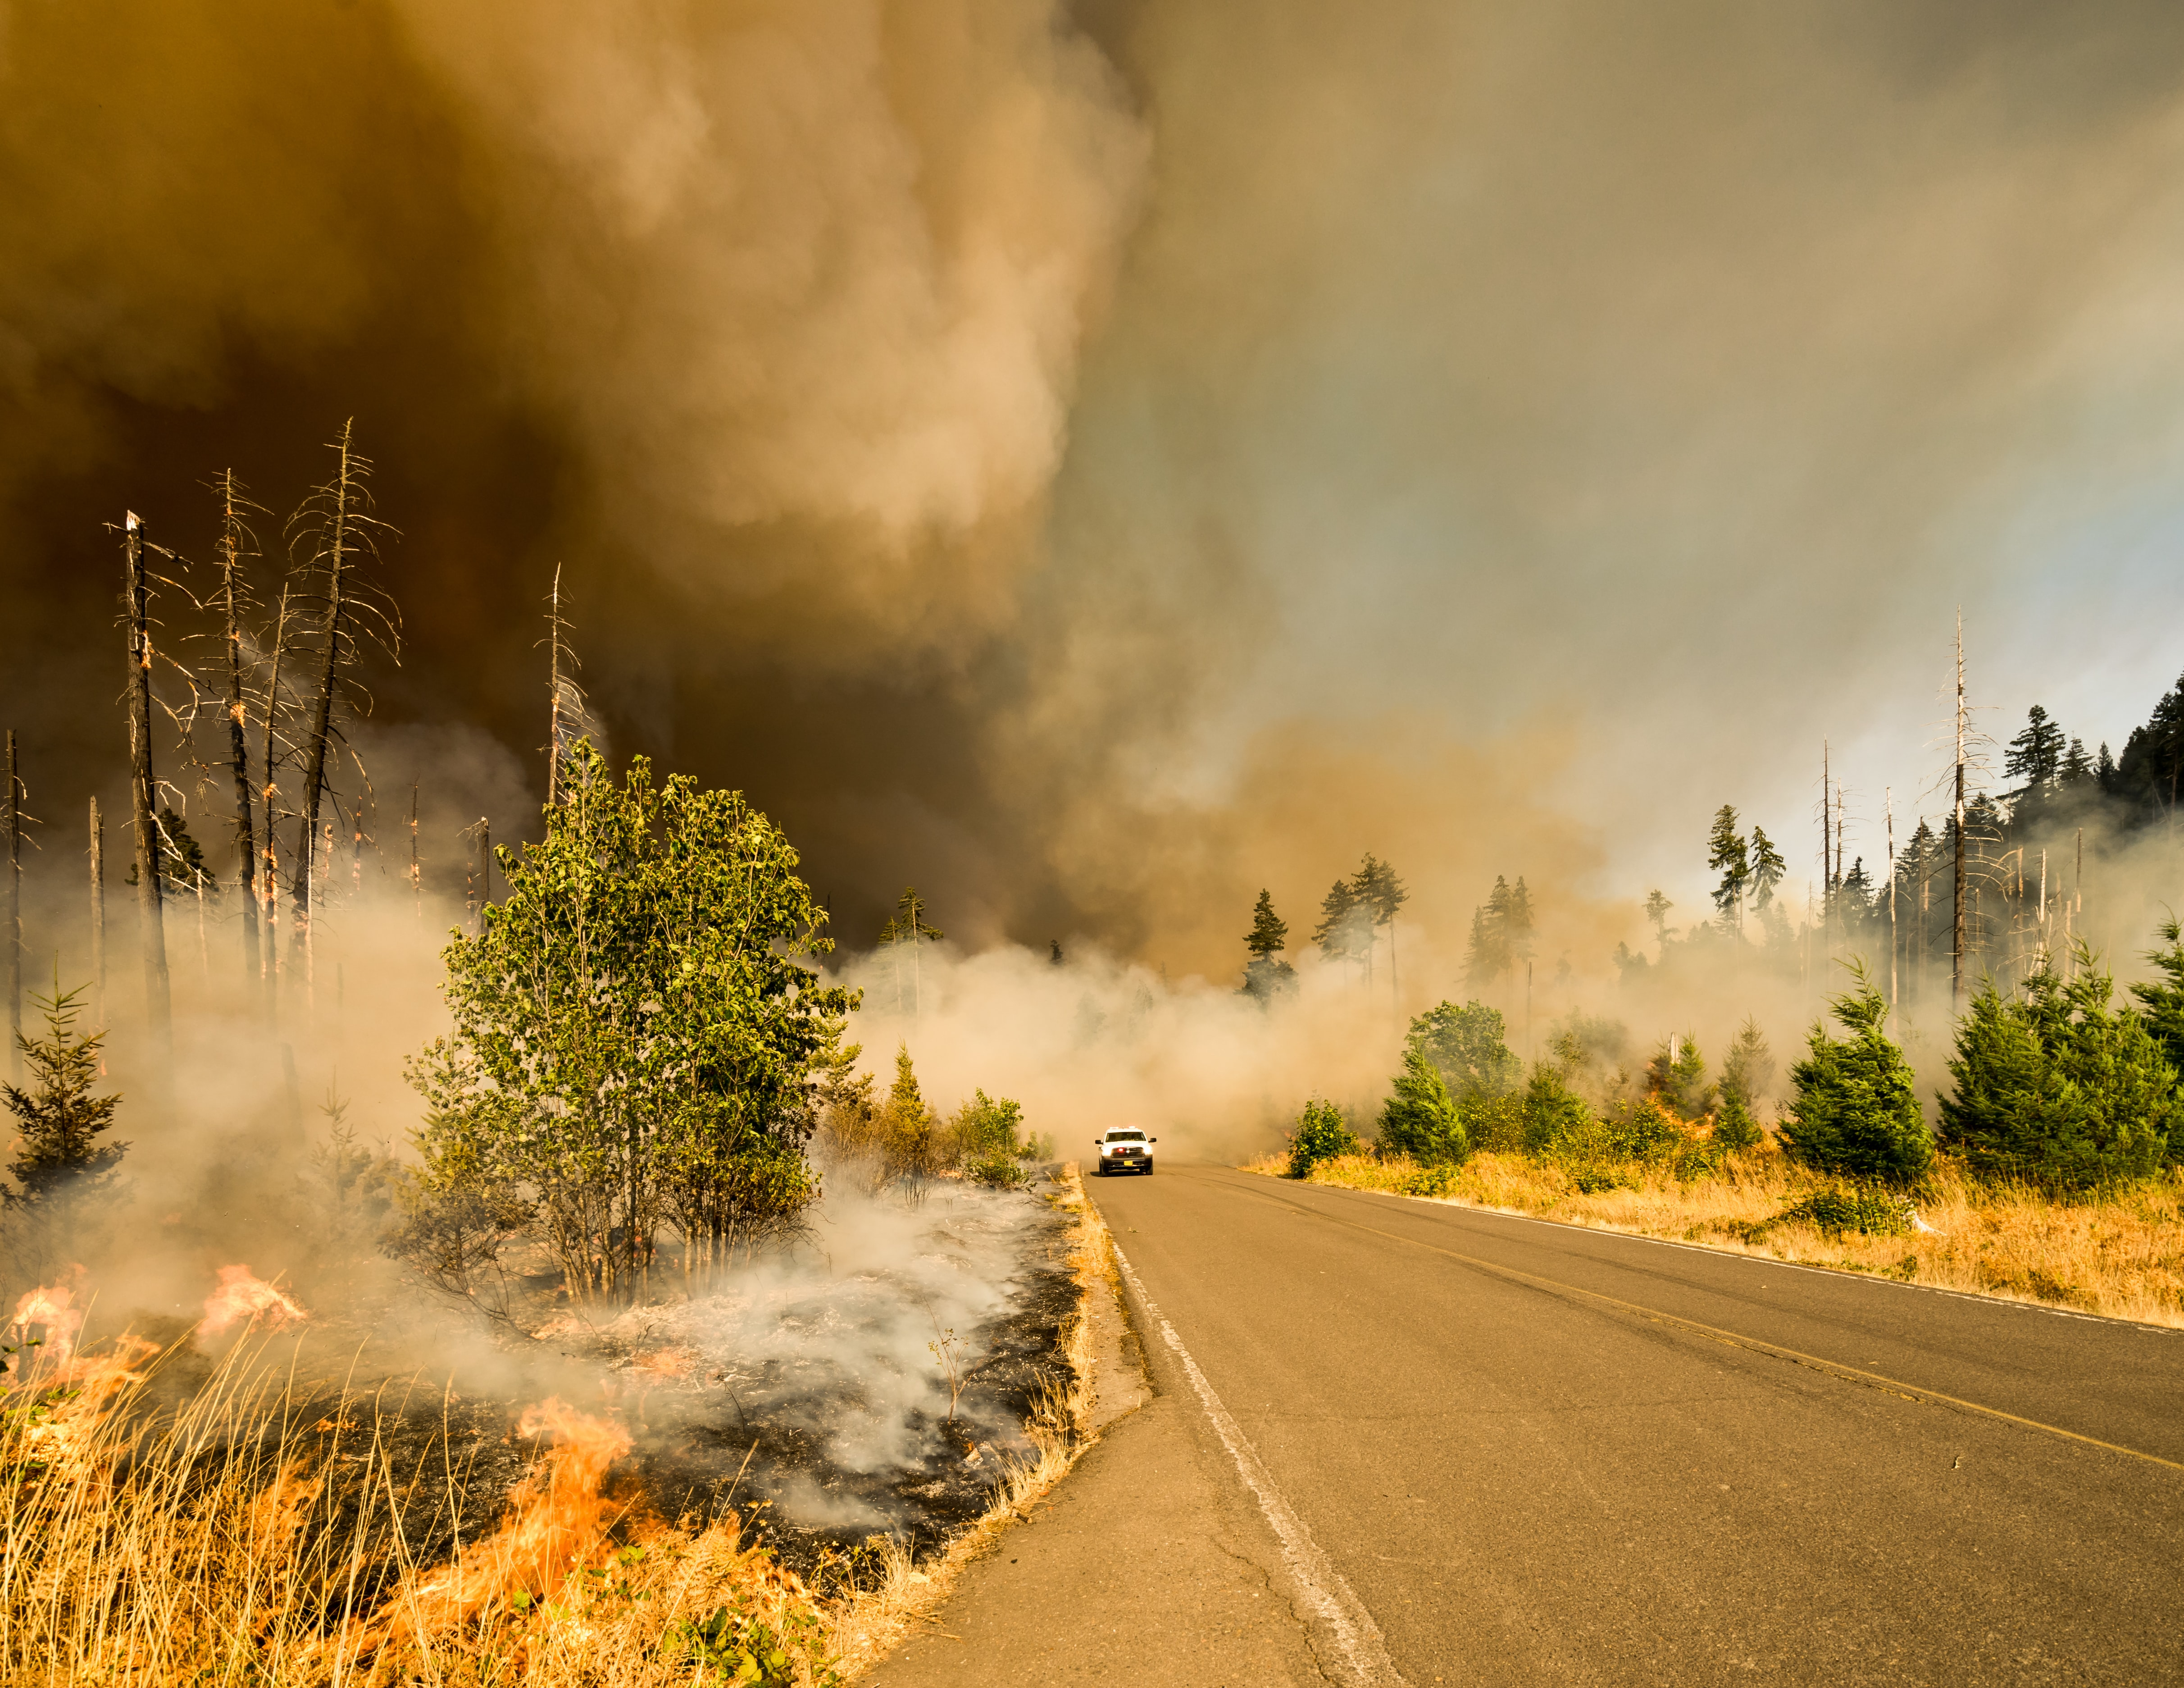 Forest fire smoldering along a country road.